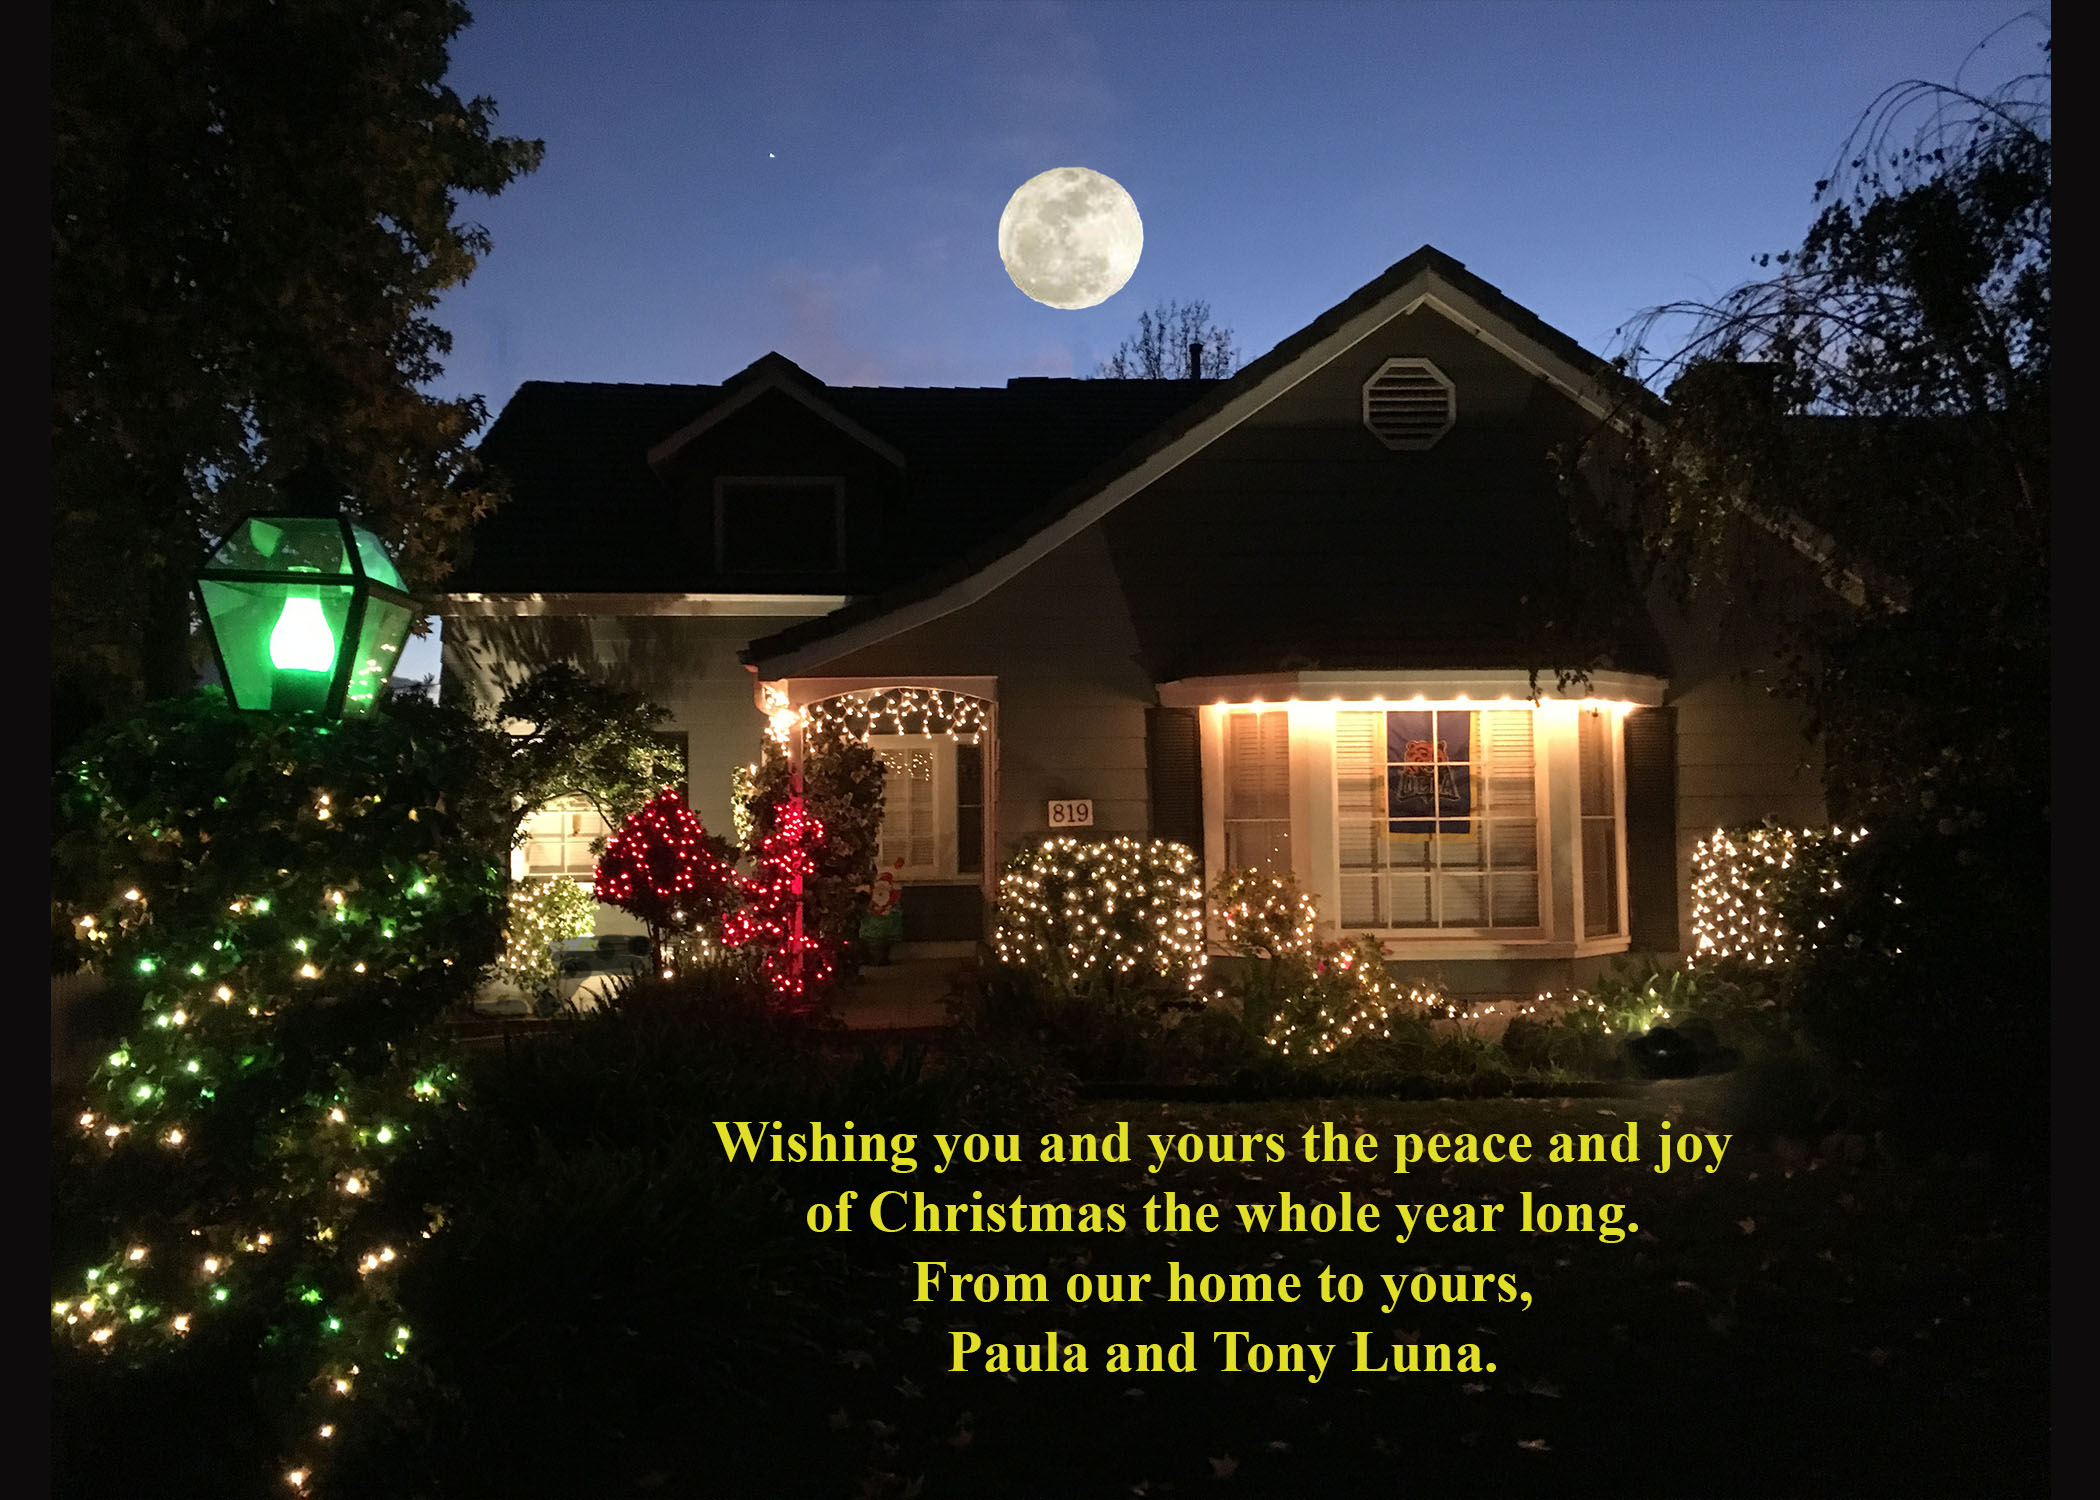 Christmas card-2017-Home with Moon.jpg